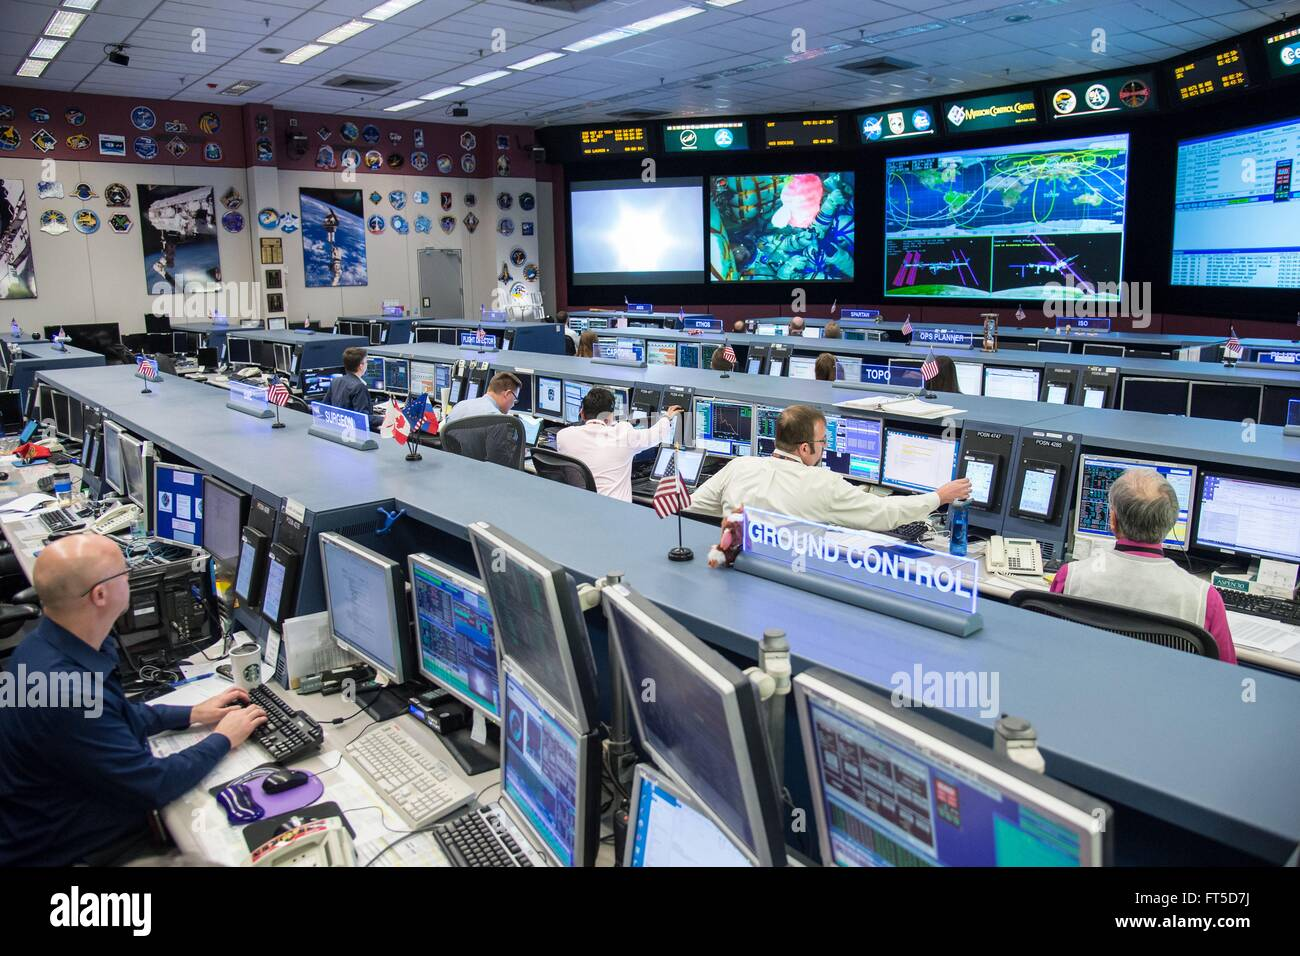 Mission Control Monitor : Nasa expedition flight control team monitor the